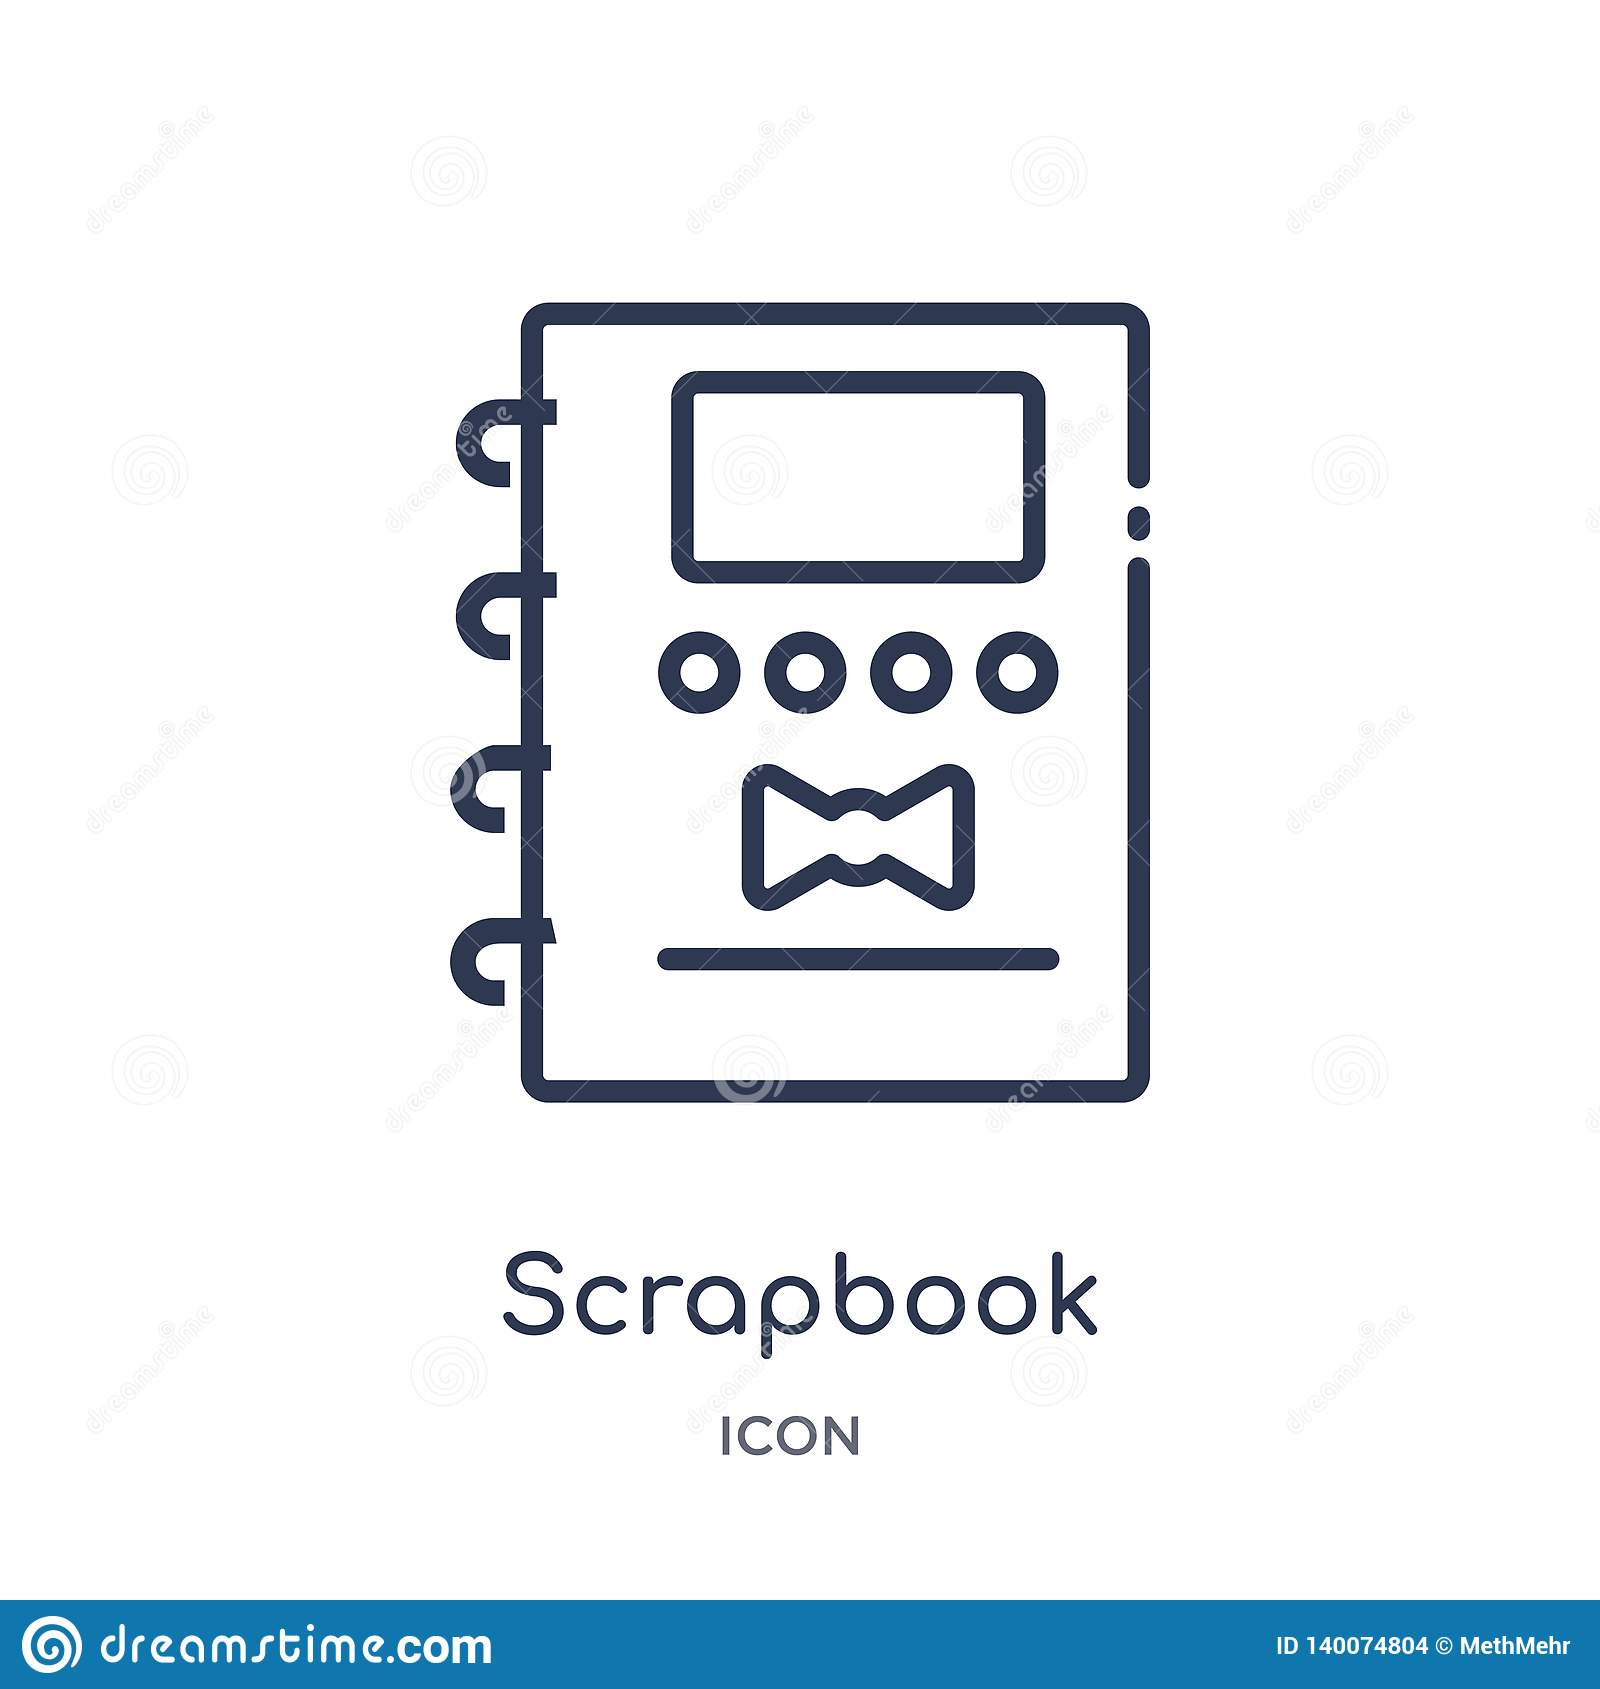 Linear scrapbook icon from Miscellaneous outline collection. Thin line scrapbook icon isolated on white background. scrapbook